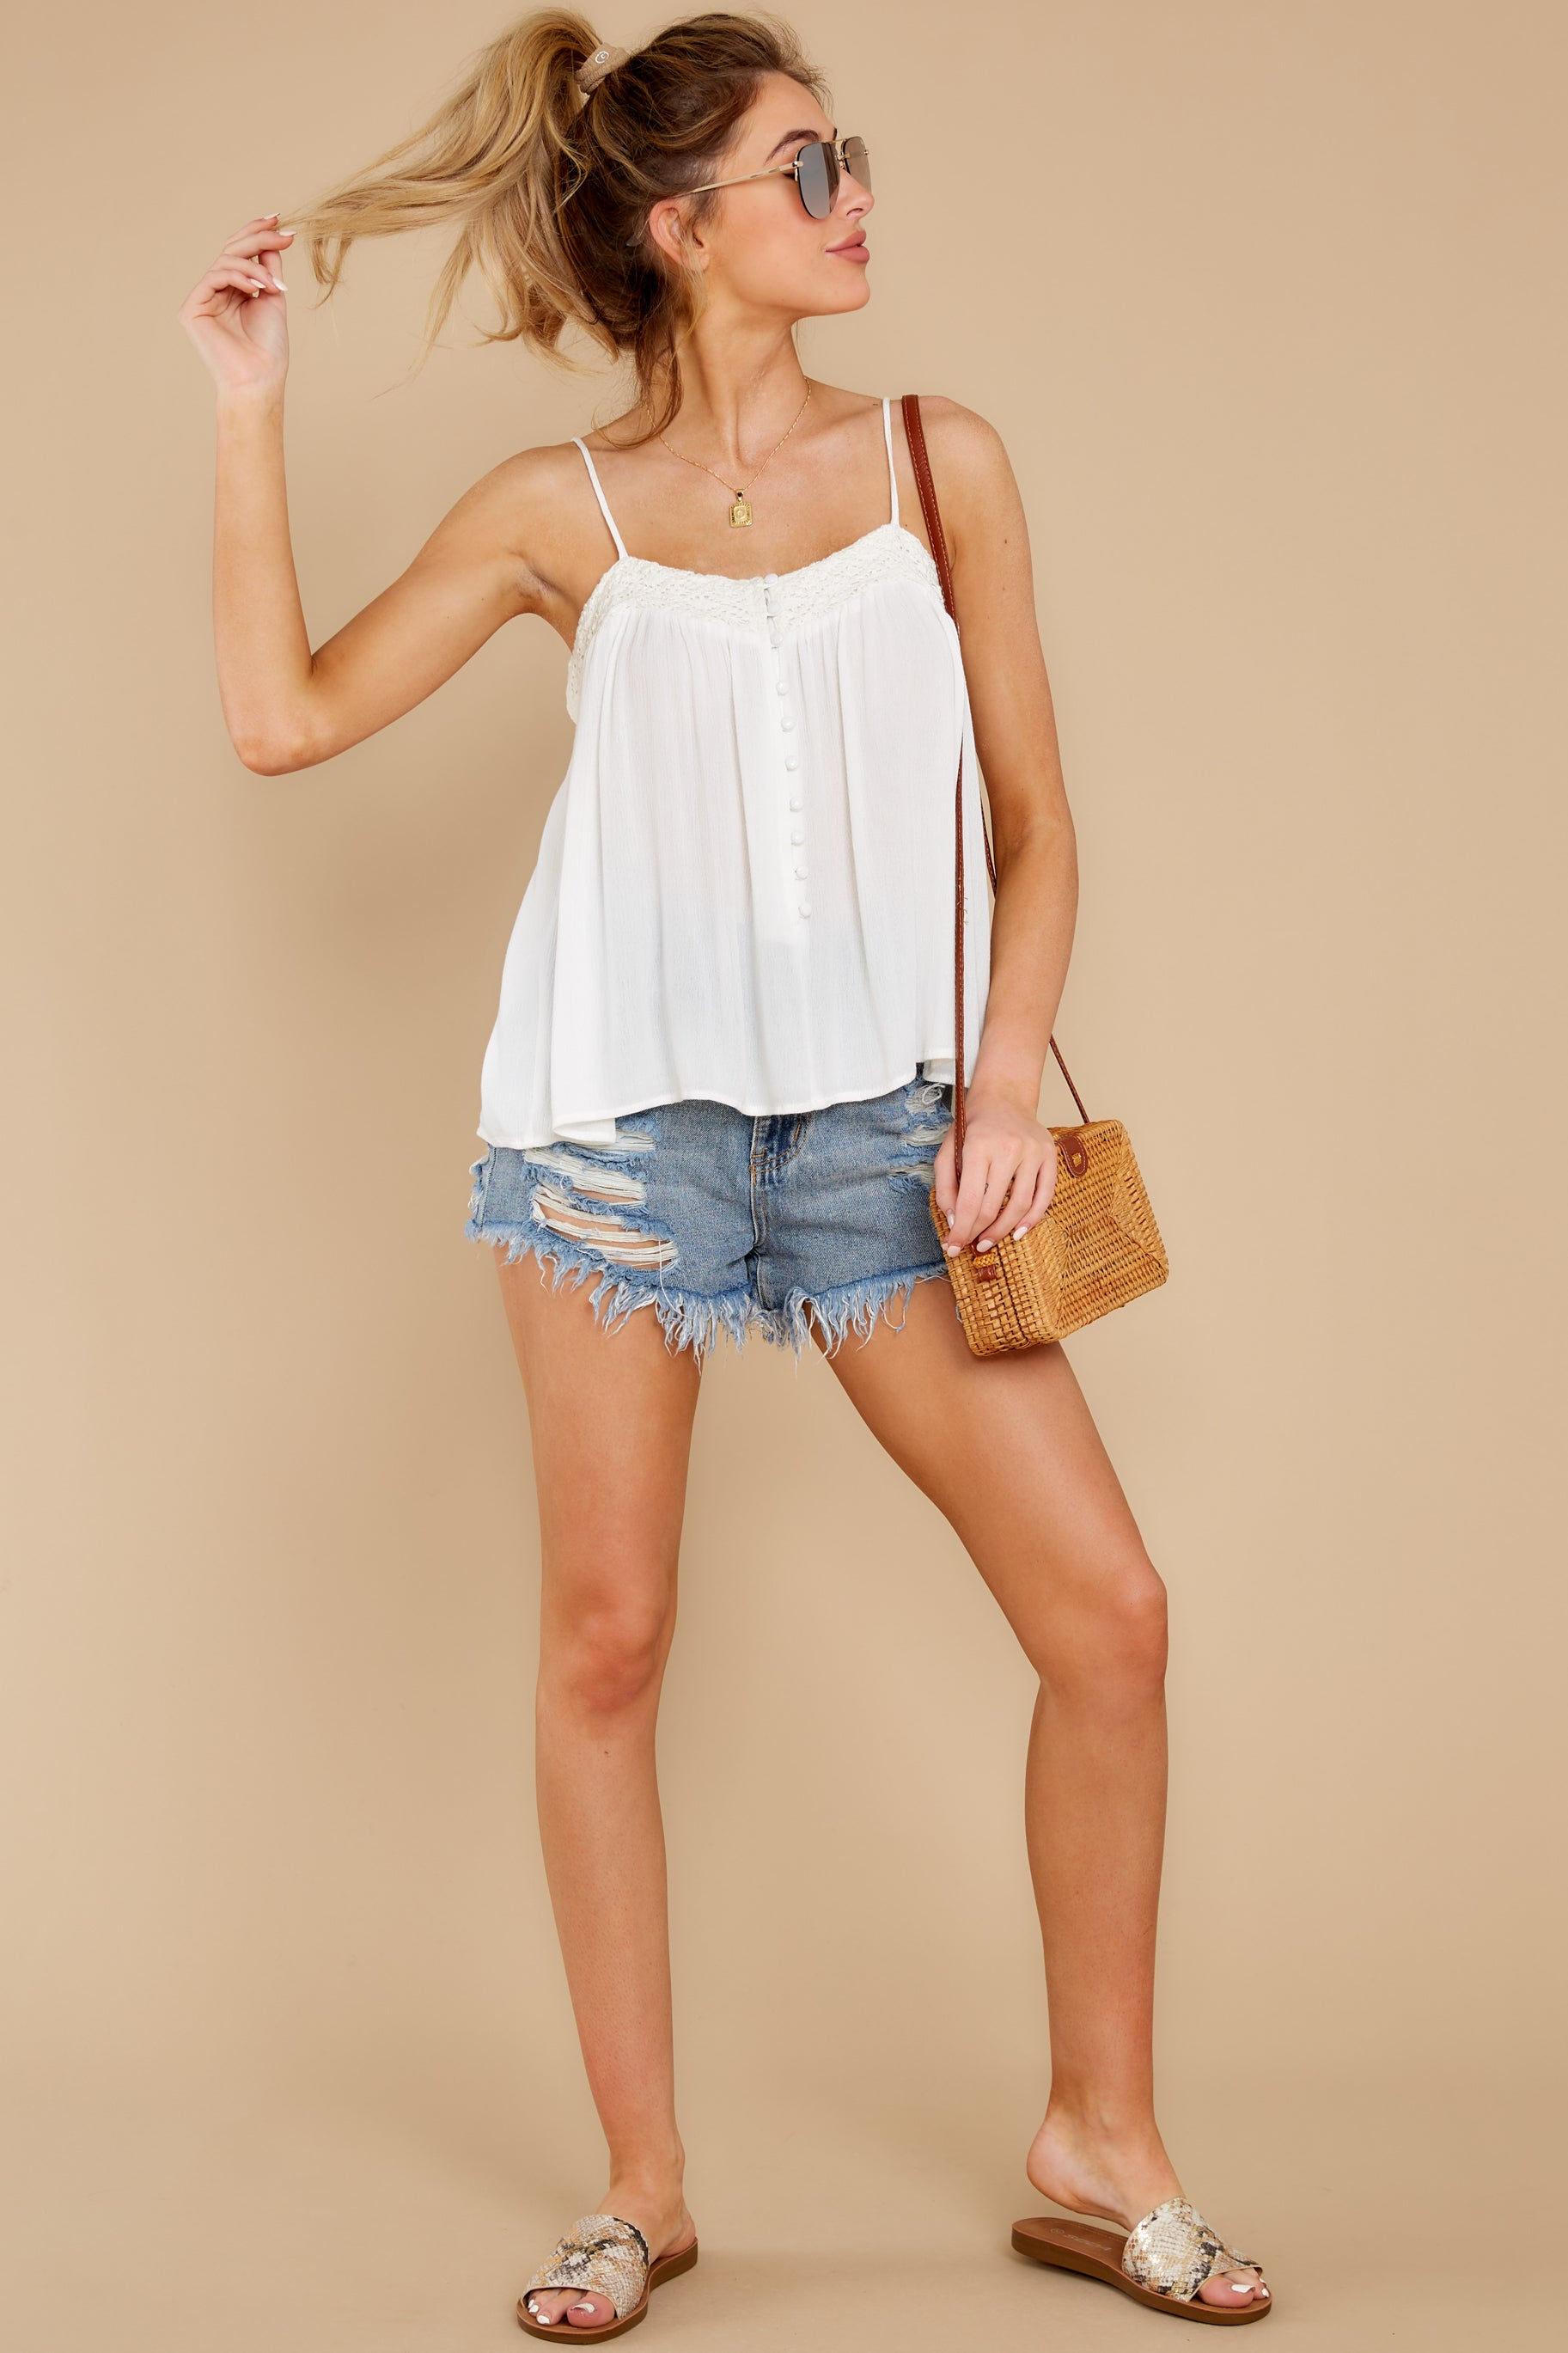 3 Without Us White Crochet Tank Top at reddress.com